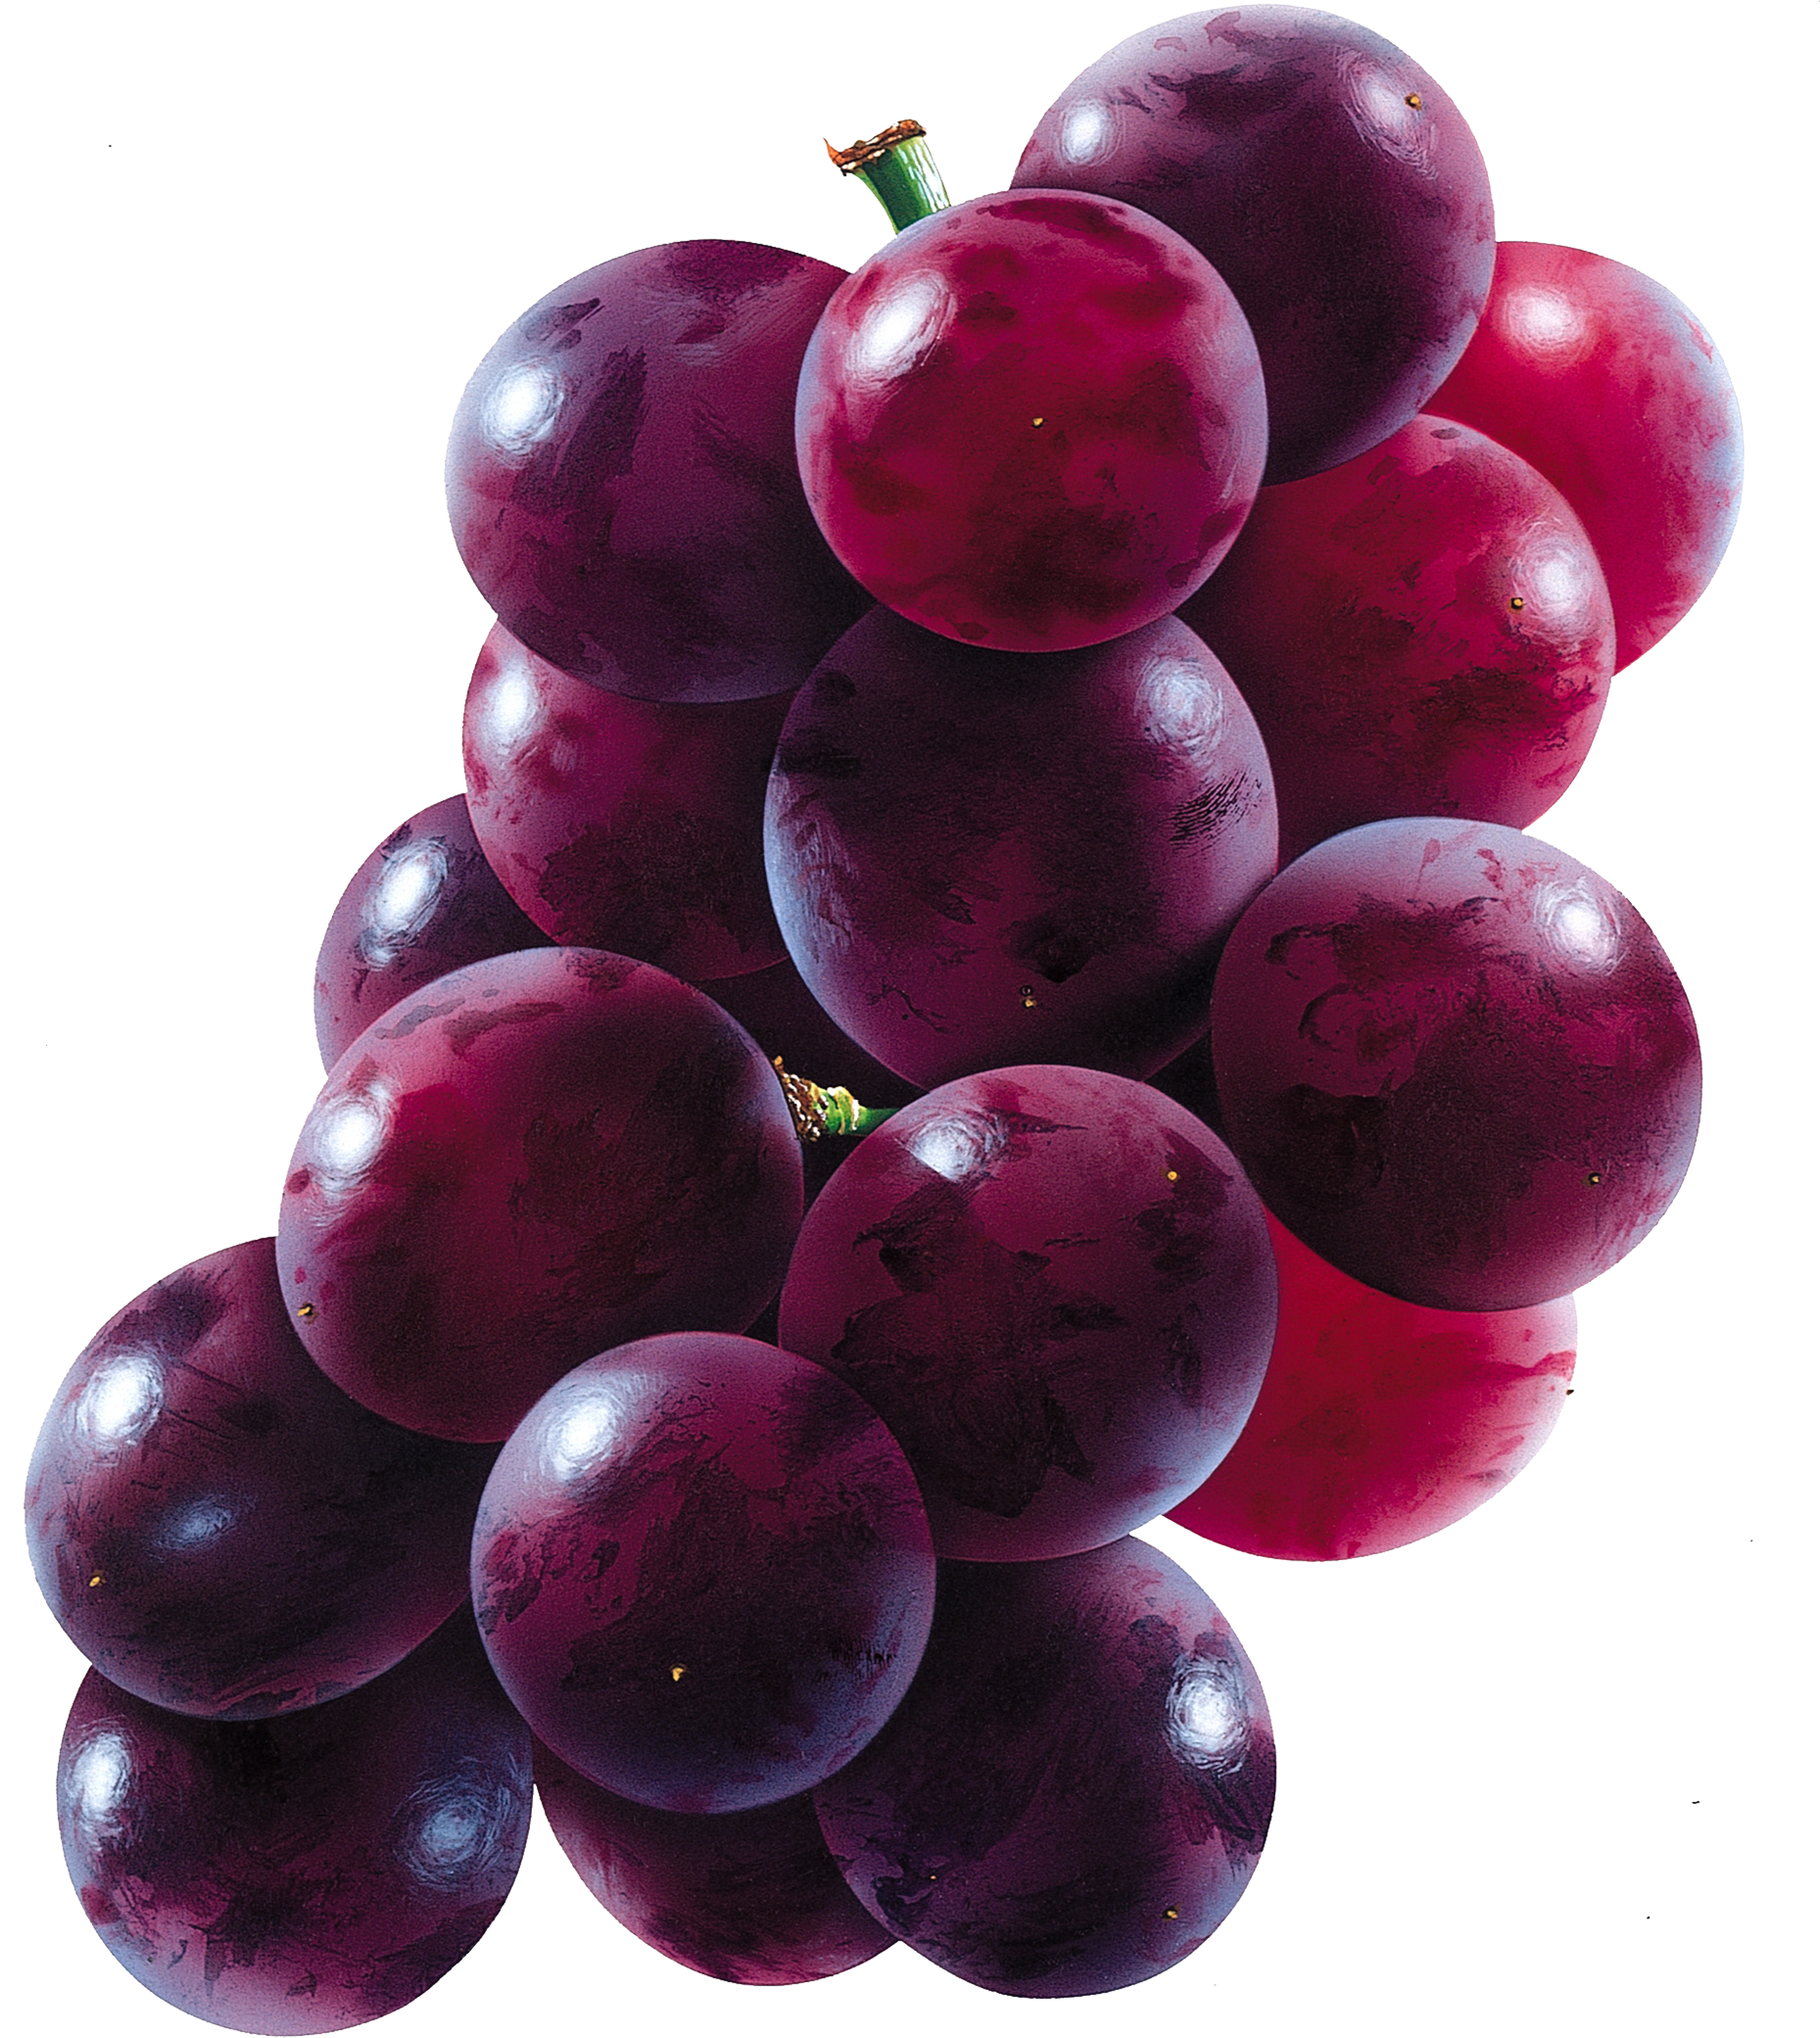 Red grape PNG image - Grapes HD PNG